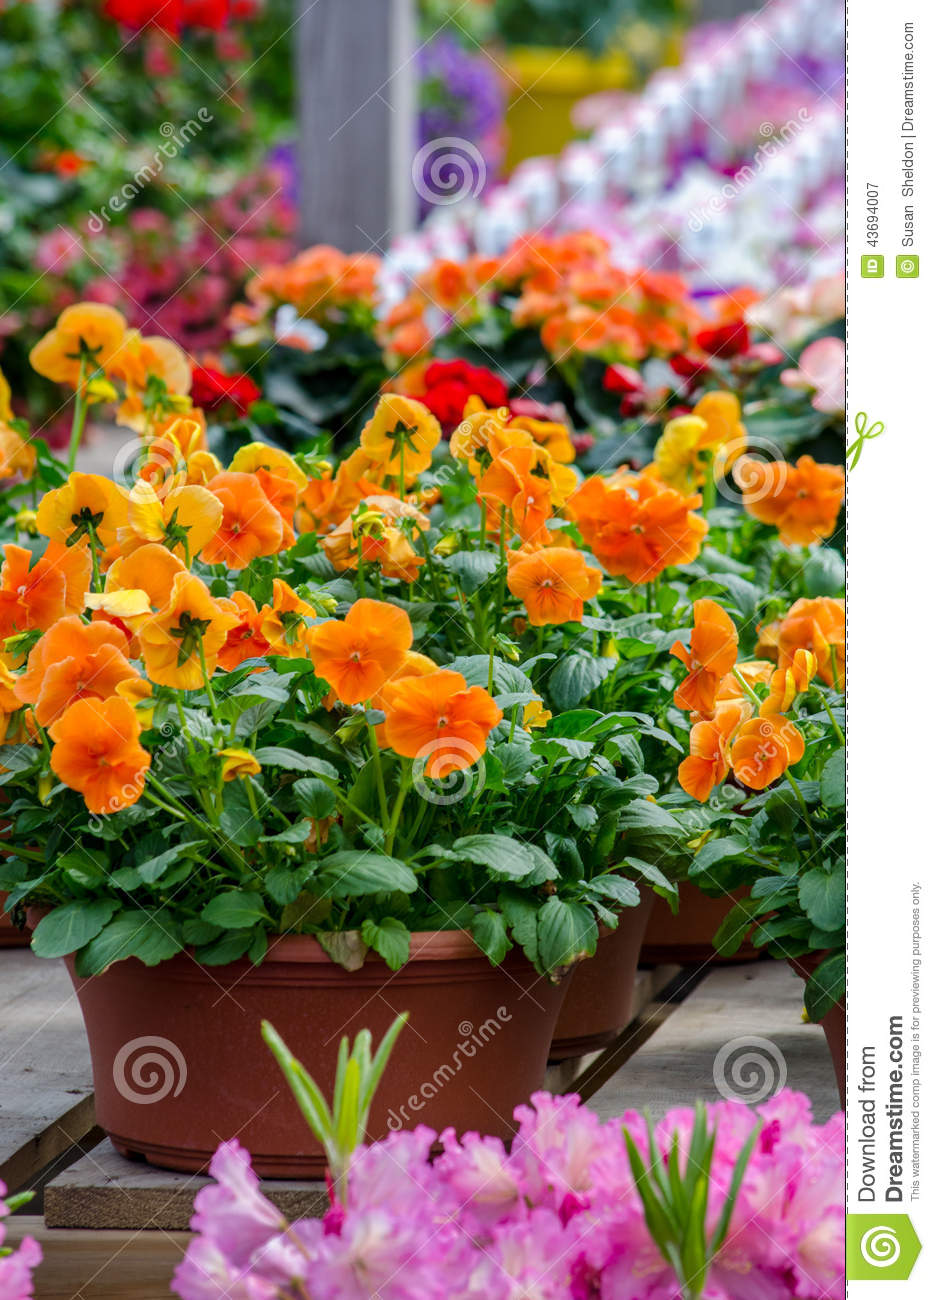 Potted spring flowers stock image image of filled pots 43694007 potted spring flowers mightylinksfo